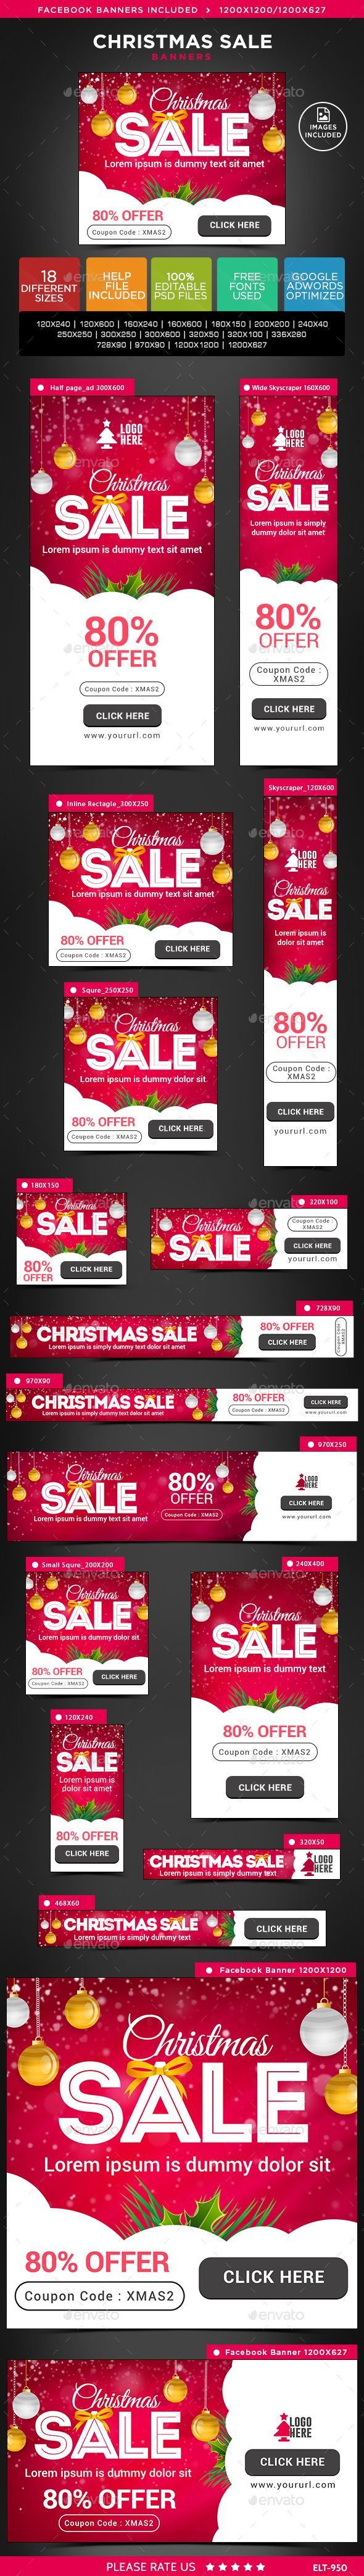 Christmas Sale Web Banners Template PSD #design Download: http://graphicriver.net/item/christmas-sale-banners/13979989?ref=ksioks